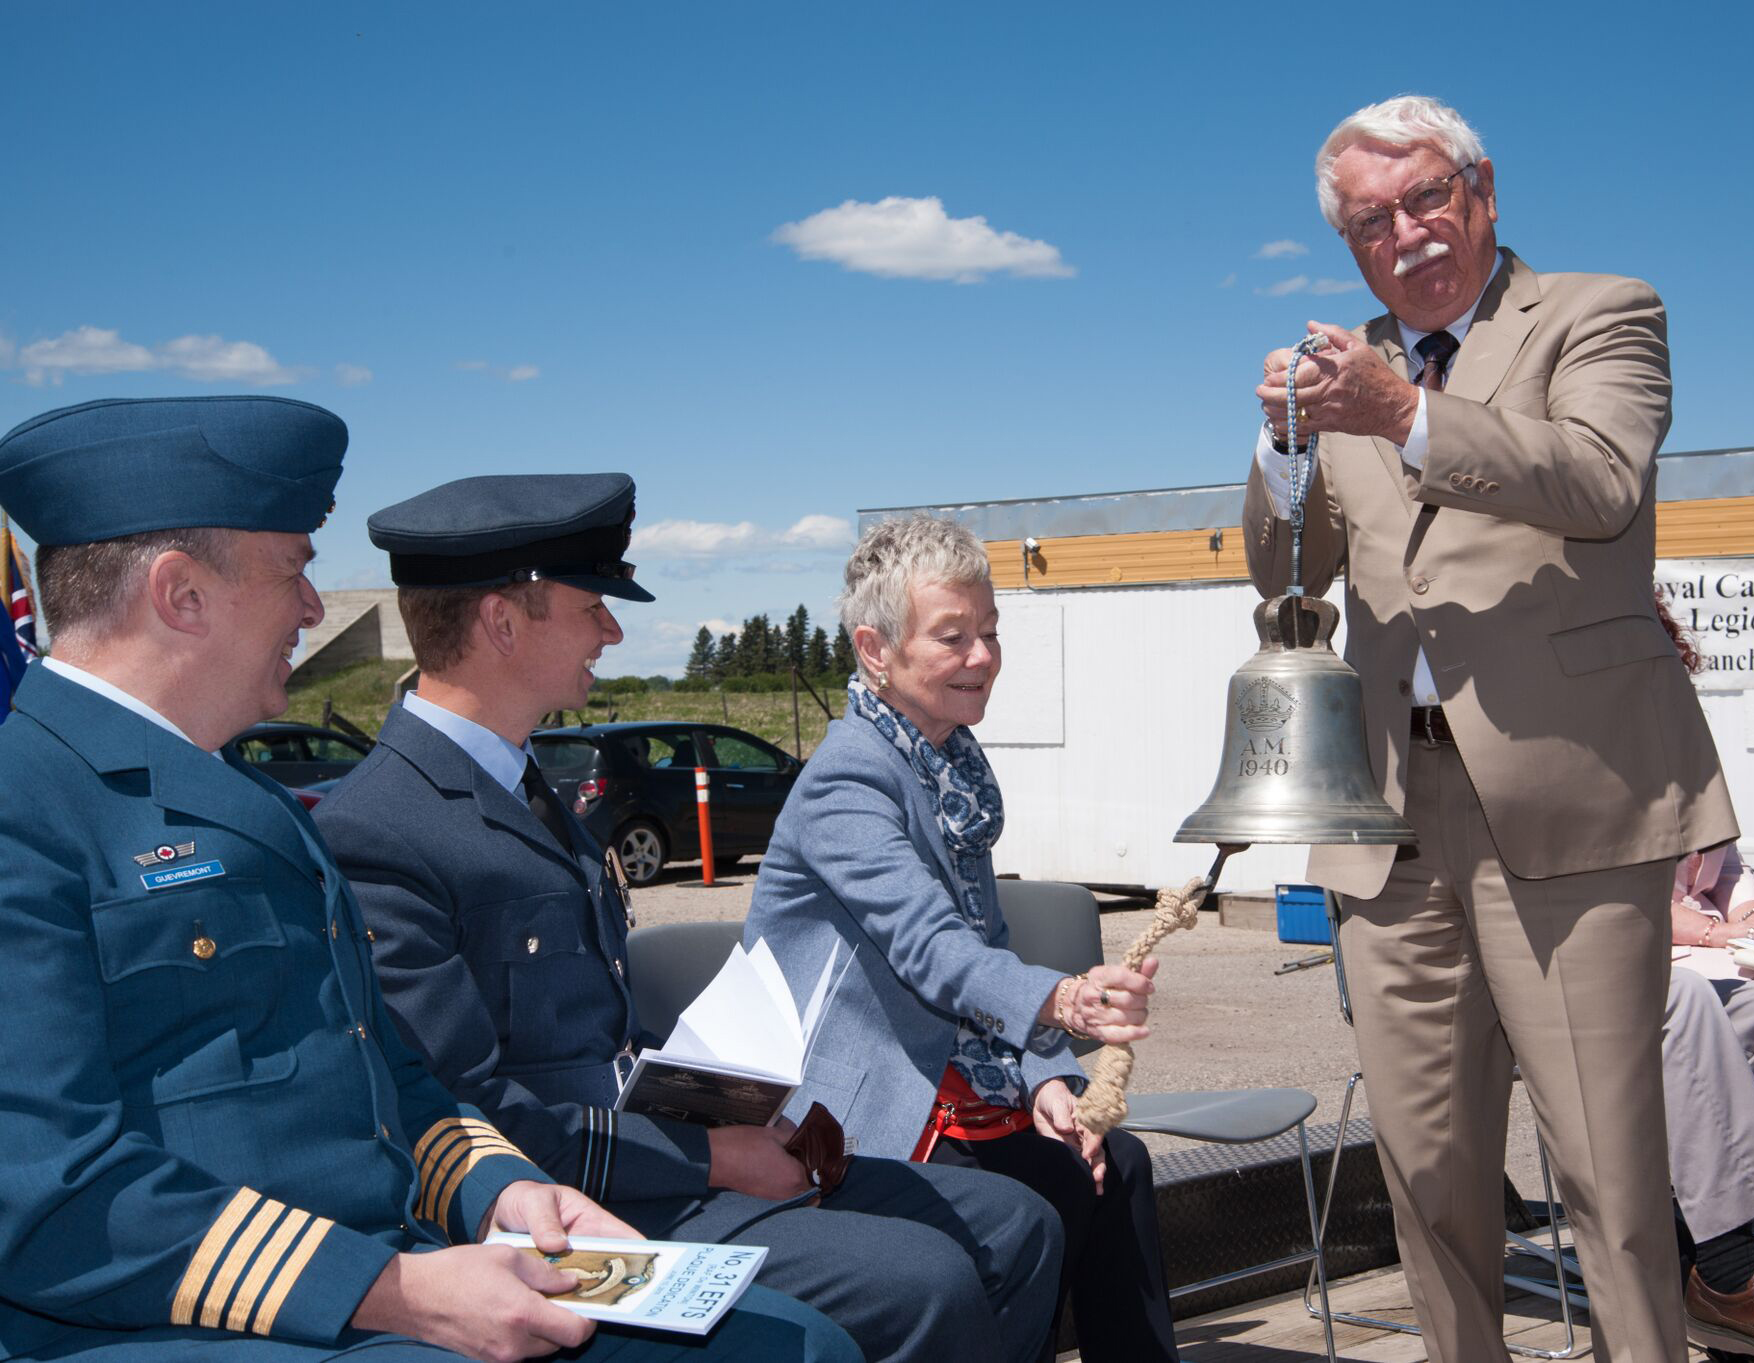 Susan Cowan rings a bell, held by the anniversary ceremony's MC, Mr.  Tim Johnston, to open the event. She is seated with Honorary Colonel Dr. Stéphane Gouvrement, far left, and Flight Lieutenant James Andrews of the Royal Air Force. PHOTO: Courtesy of Anne Gafiuk